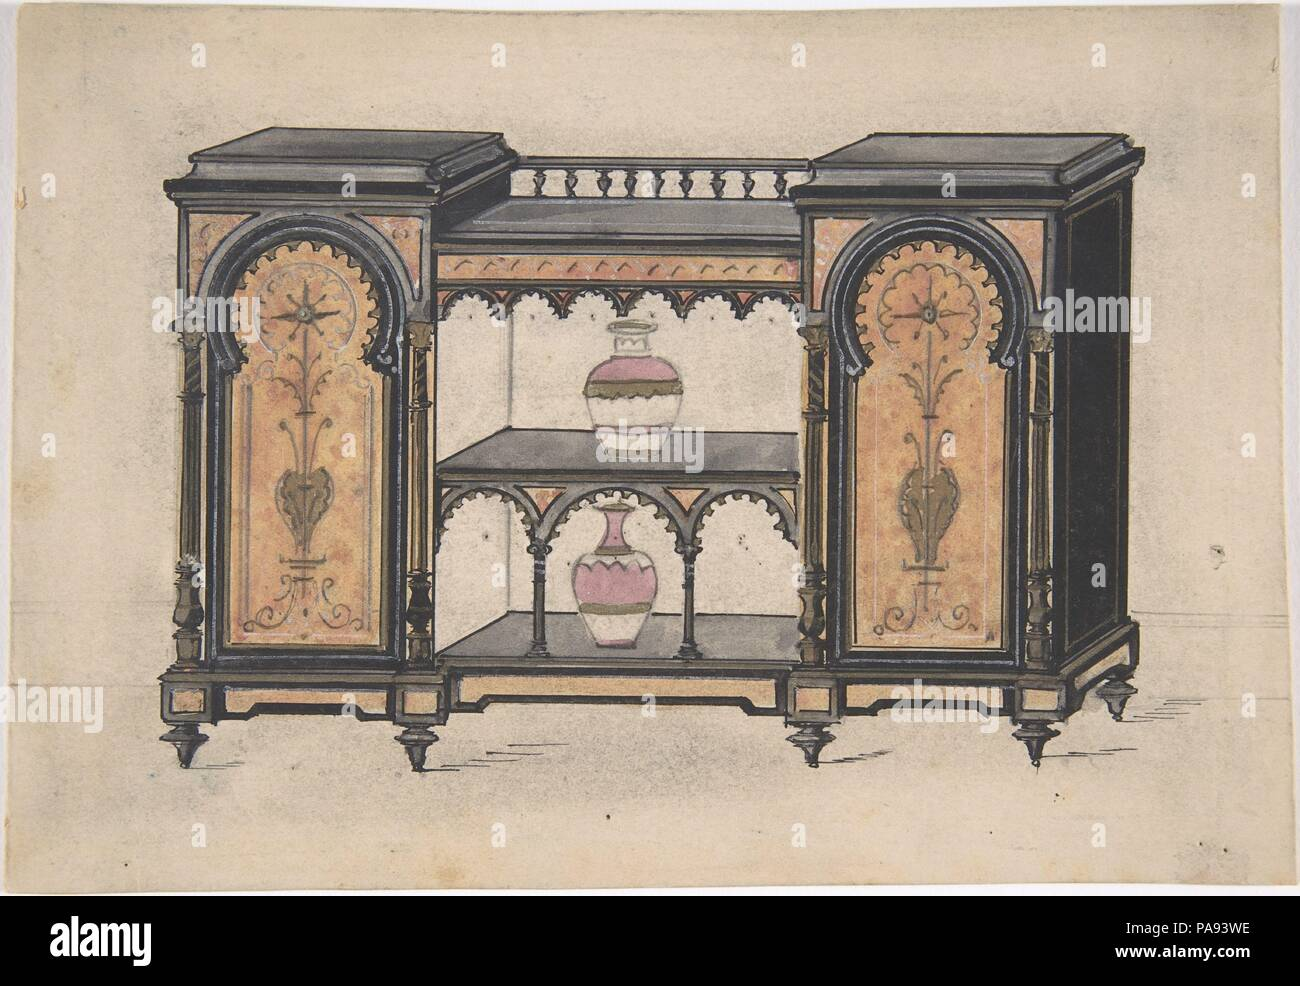 Design for a Cabinet with Two Central Shelves and Arched Doors. Artist: Anonymous, British, 19th century. Dimensions: sheet: 5 3/16 x 7 9/16 in. (13.1 x 19.2 cm). Date: 19th century. Museum: Metropolitan Museum of Art, New York, USA. - Stock Image